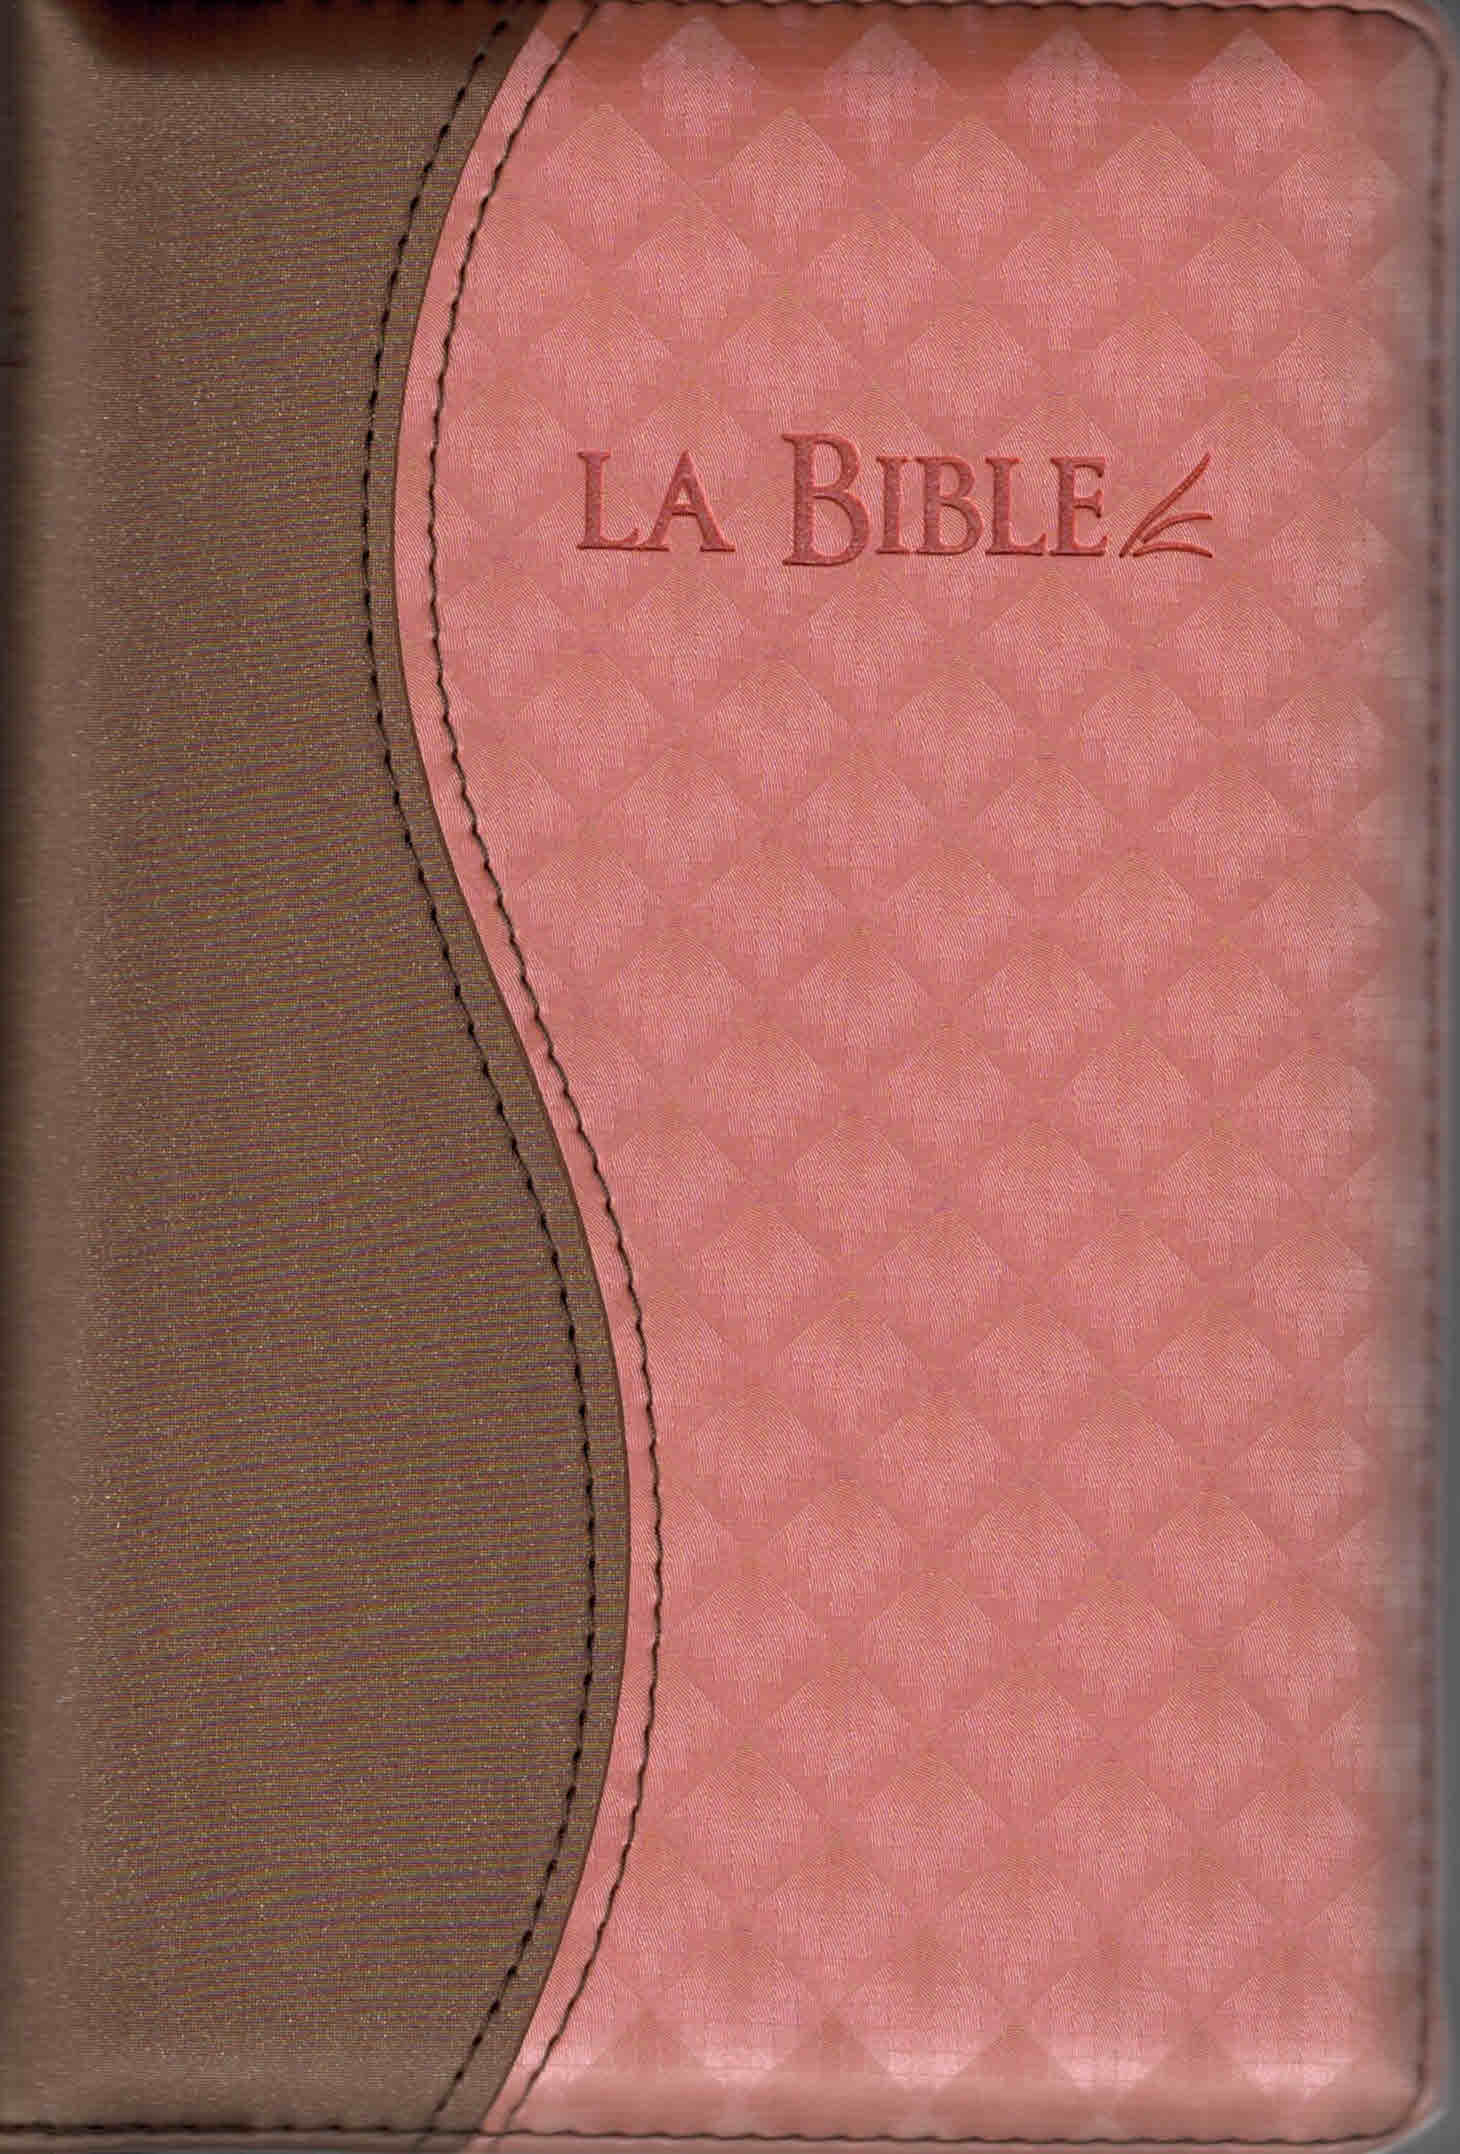 Bible SG 21 Compacte duo brun saumon